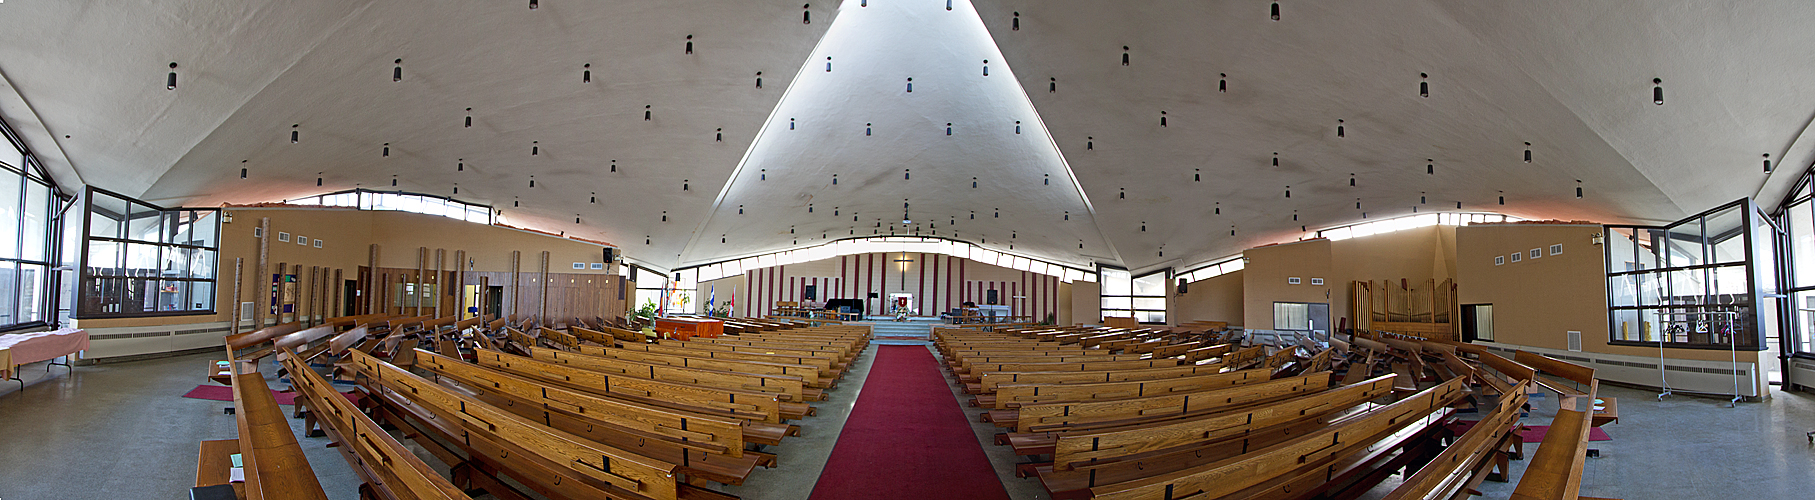 photos of church projects church acoustics sound systems. Black Bedroom Furniture Sets. Home Design Ideas